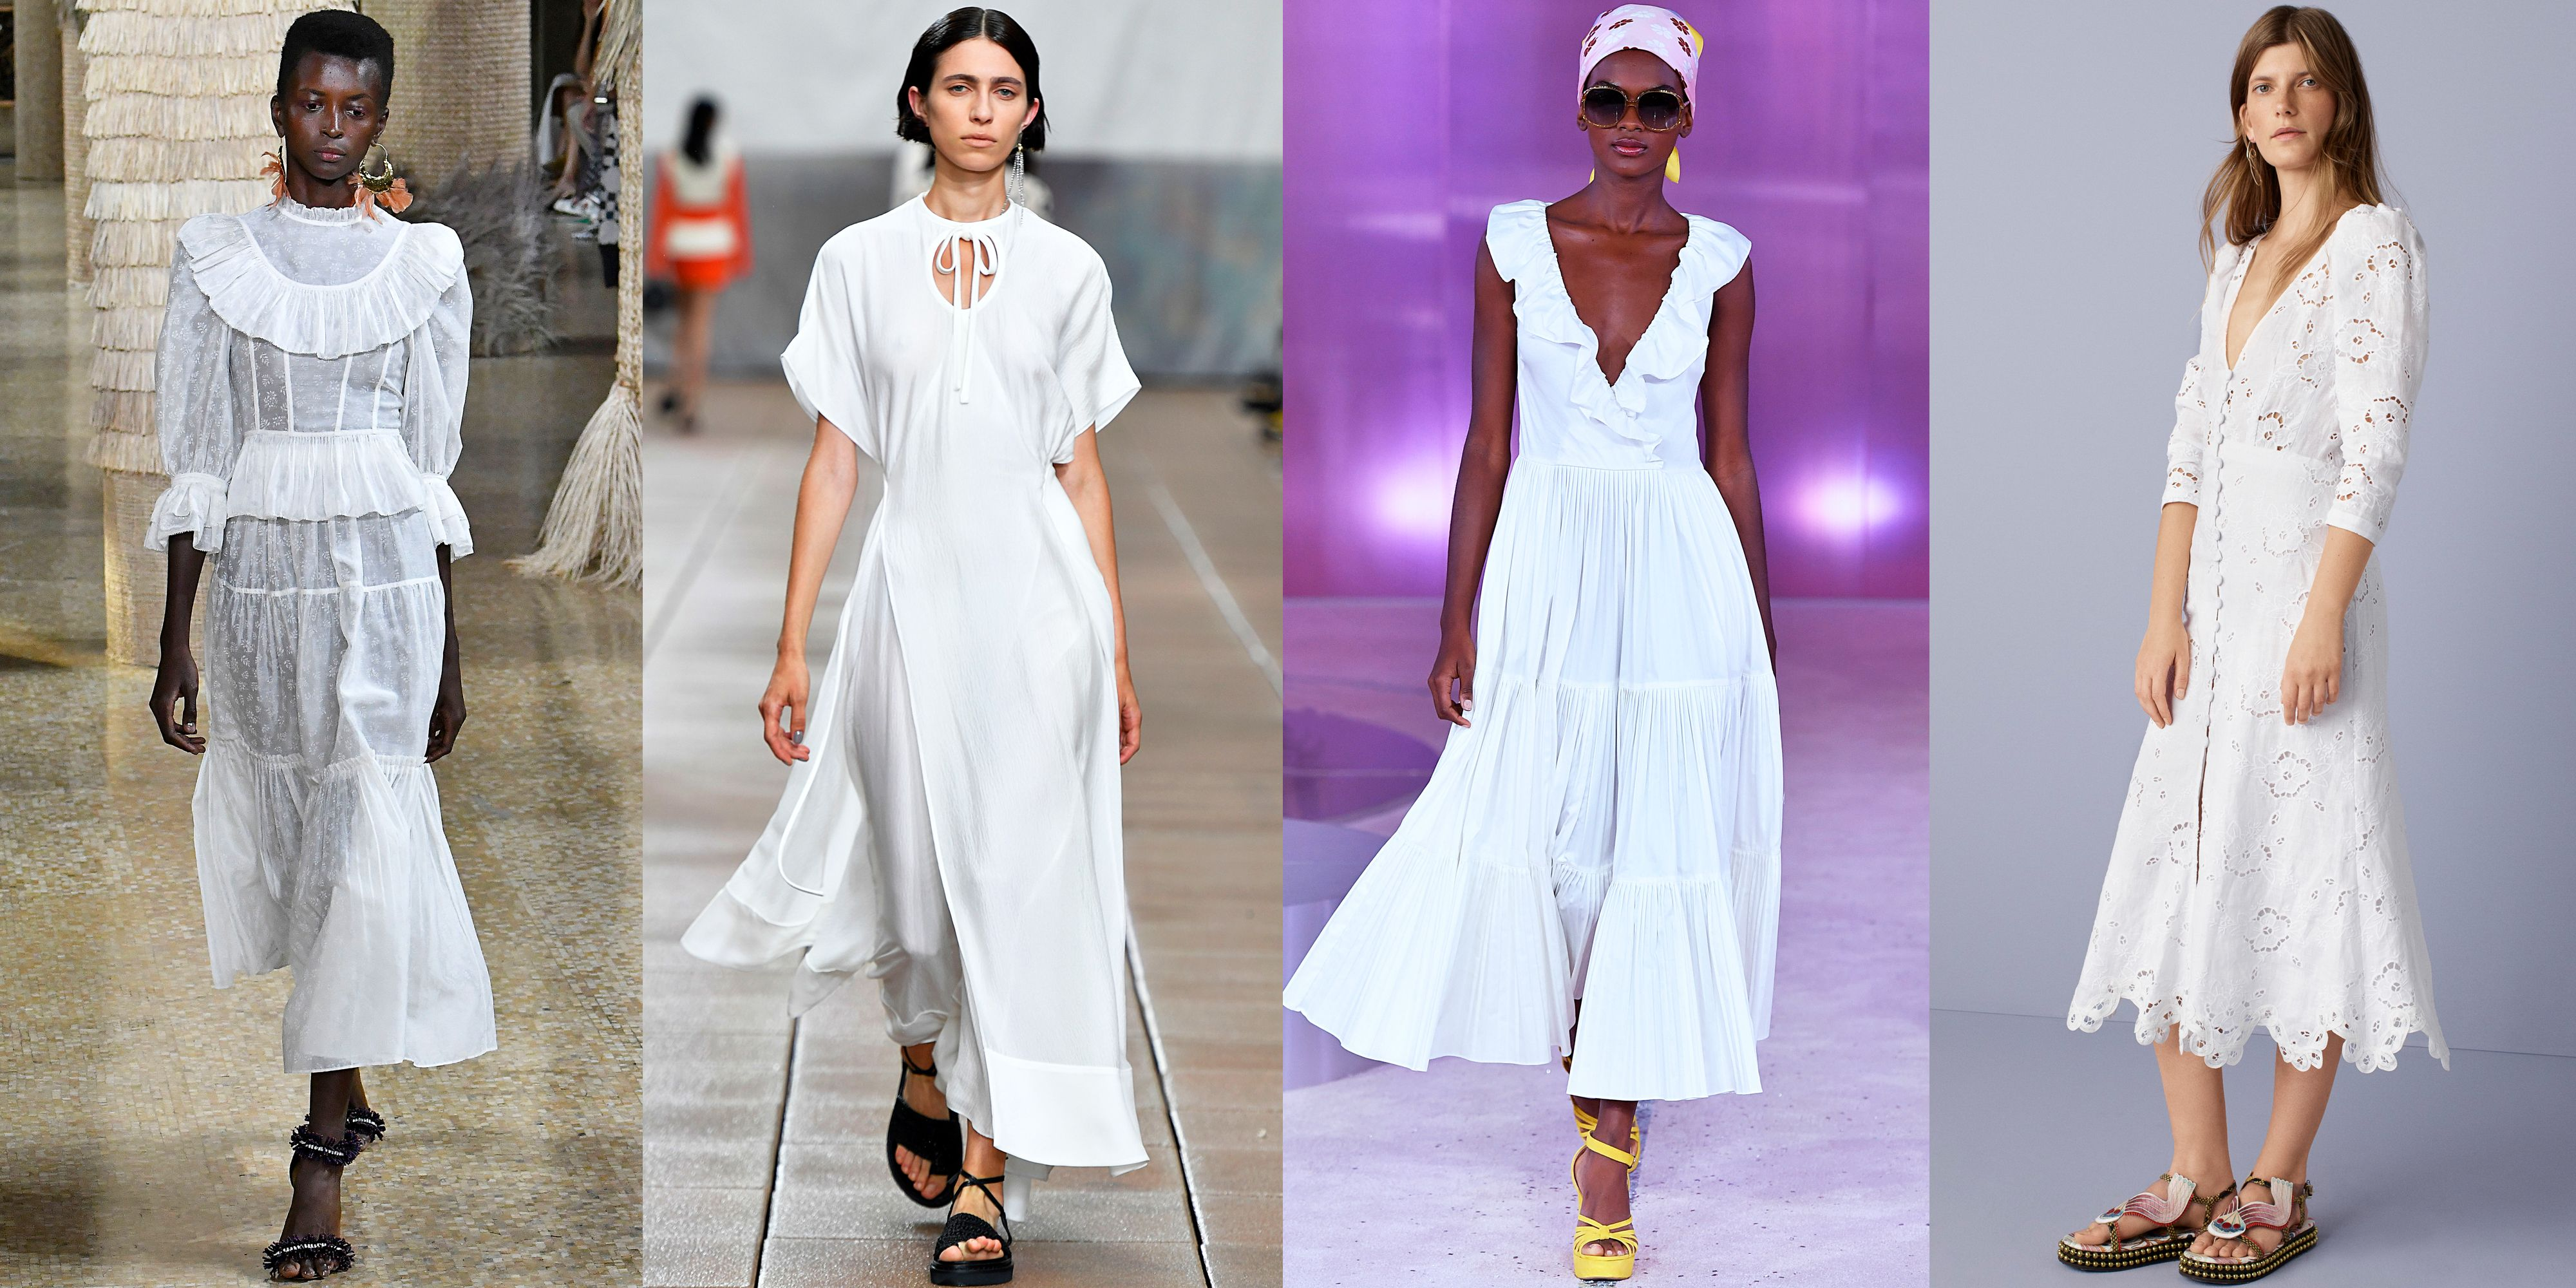 Little White Dresses As seen at Ulla Johnson, 3.1 Phillip Lim, Kate Spade, Rebecca Taylor The search for that perfect white summer dress is over, because designers sent a host of options down the catwalk for next season. Sure, they were all white, but they differed in terms of fabric (some designers used lace while others opted for sheer cotton material) and style (some LWDs were designed with sleeves, others with ruffle details).